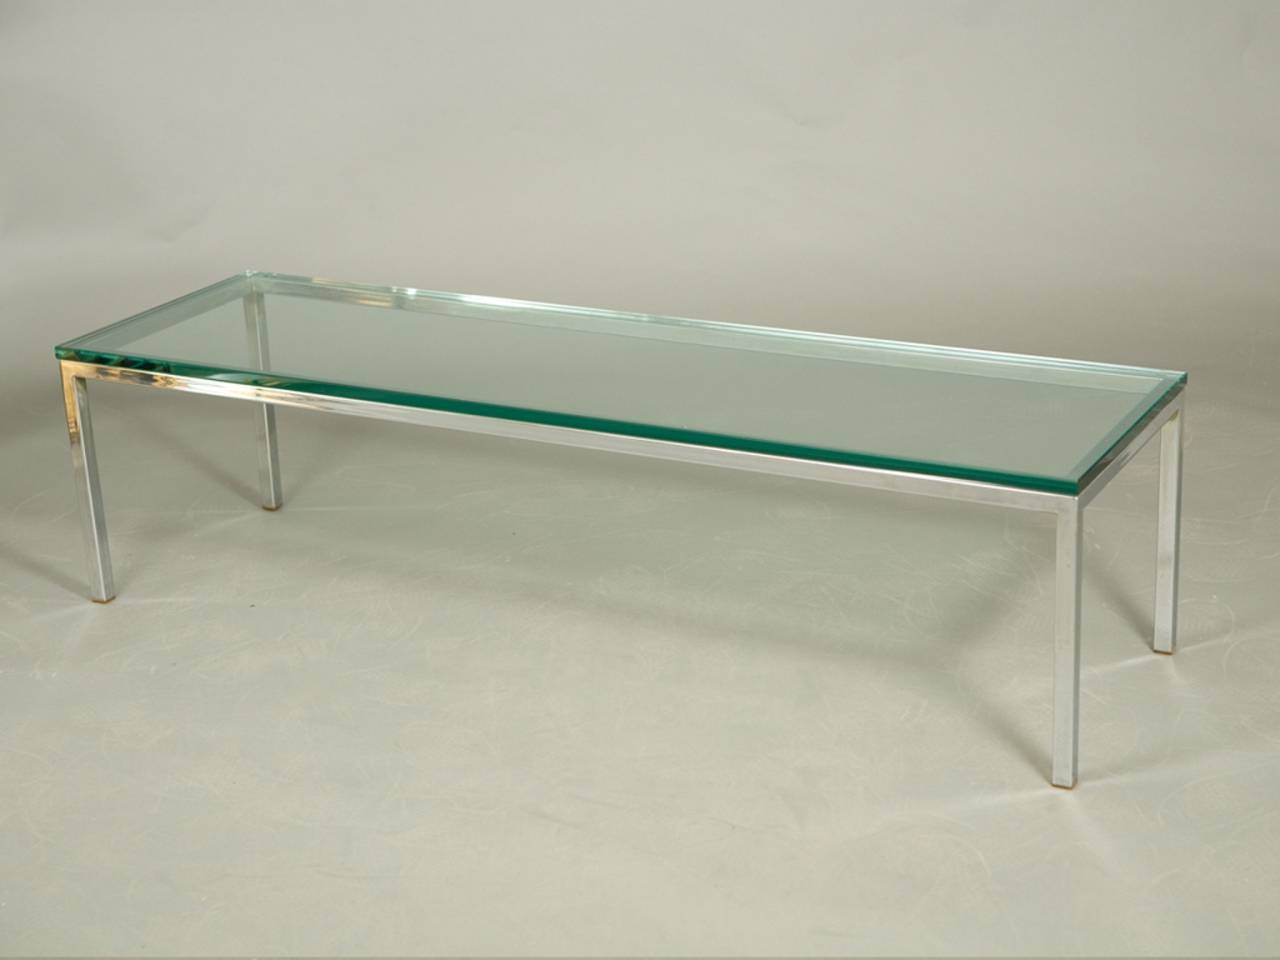 Modern Glass Coffee Tables For Your Modern Kitchen - Chocoaddicts for Modern Glass Coffee Tables (Image 25 of 30)